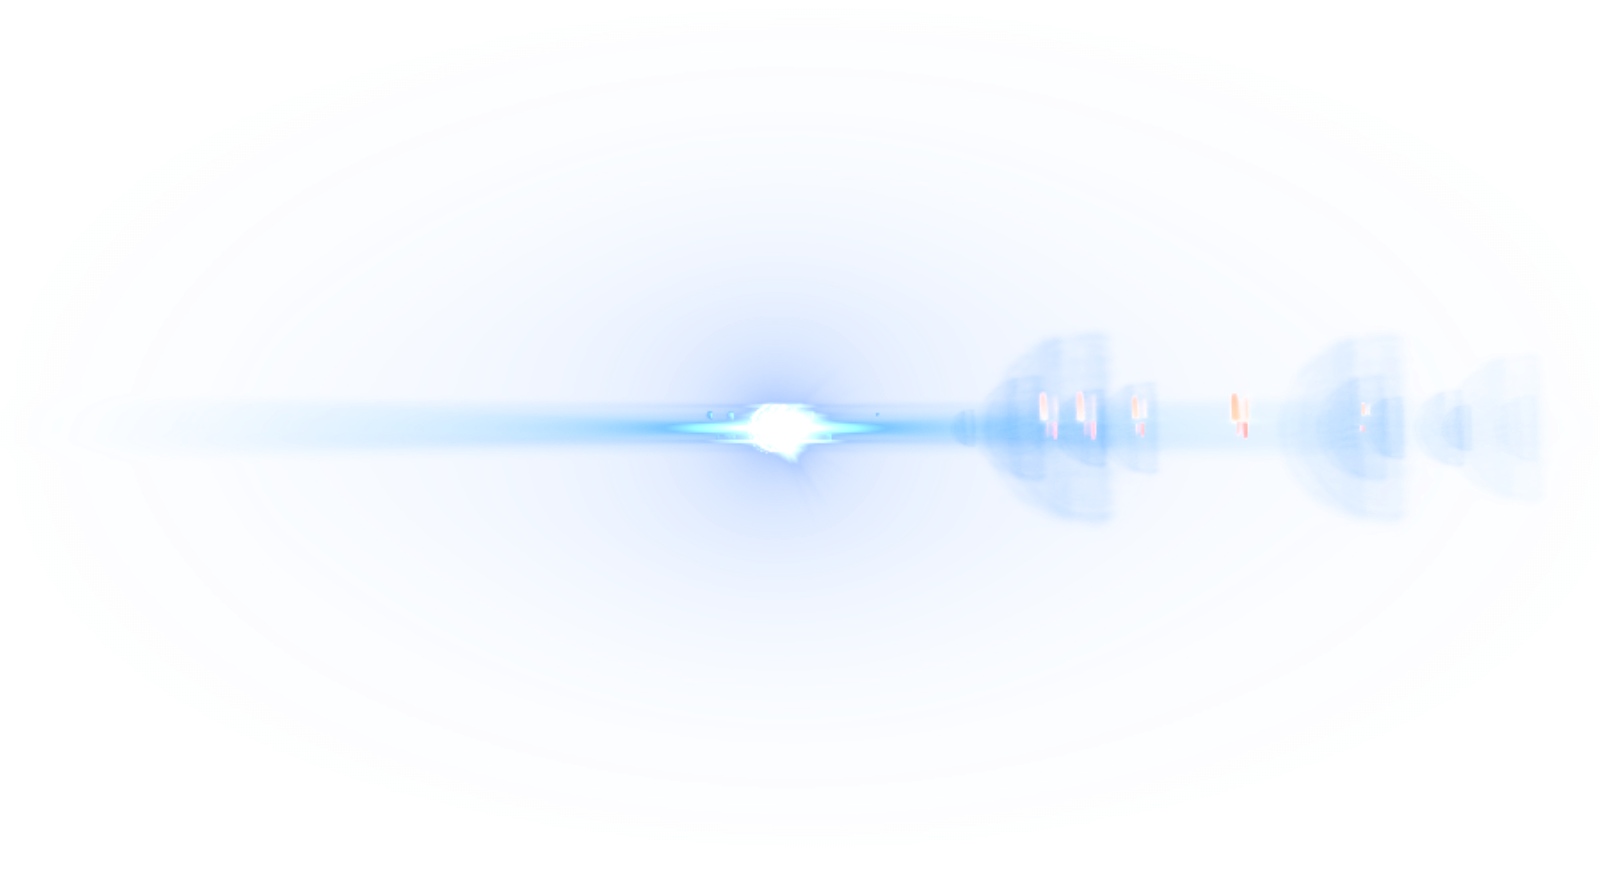 Blue optical flare png. Lespngenfolies flares